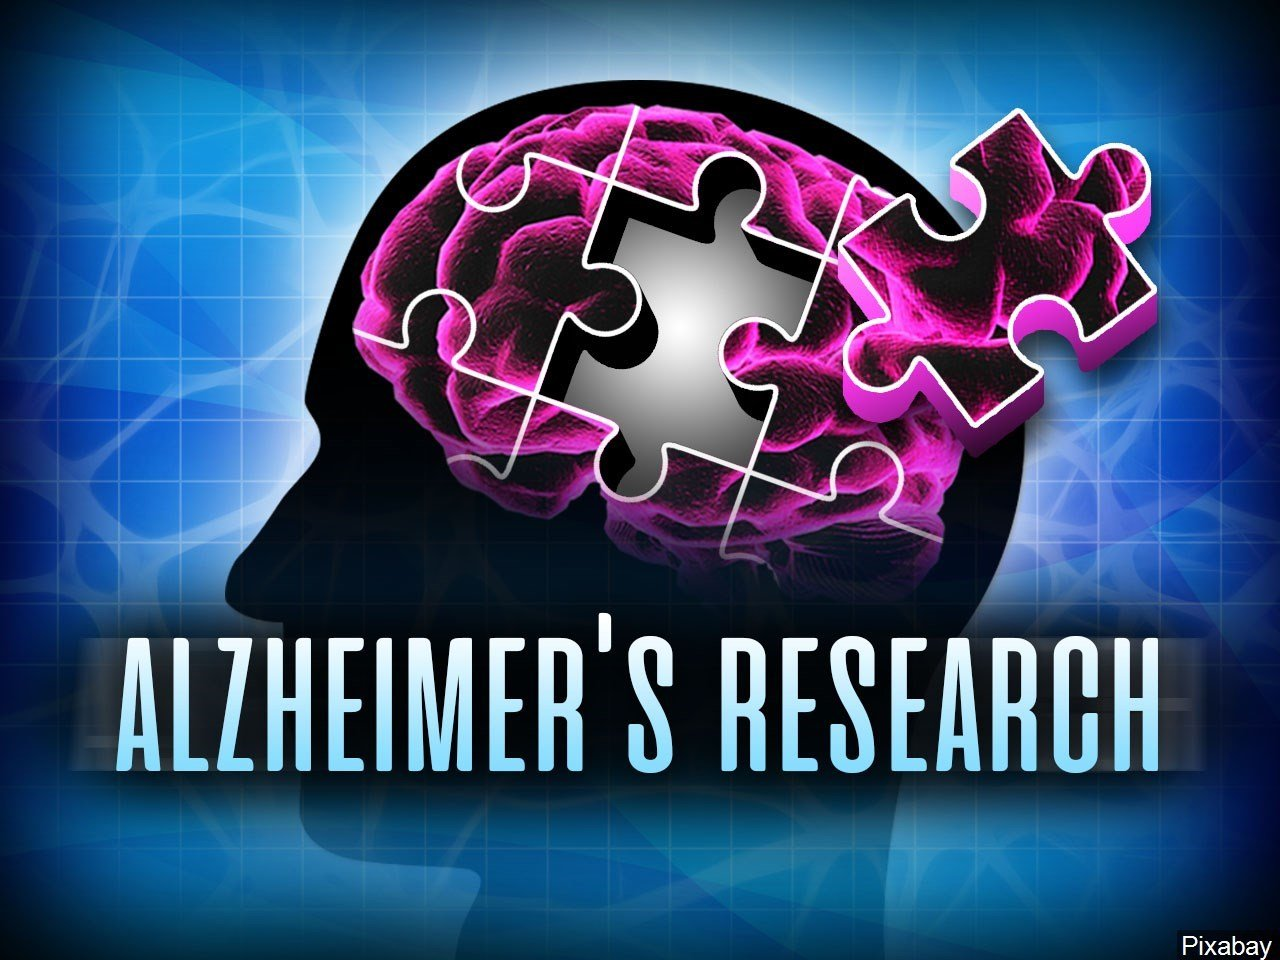 Irish scientists claim to be able to slow Alzheimer's disease